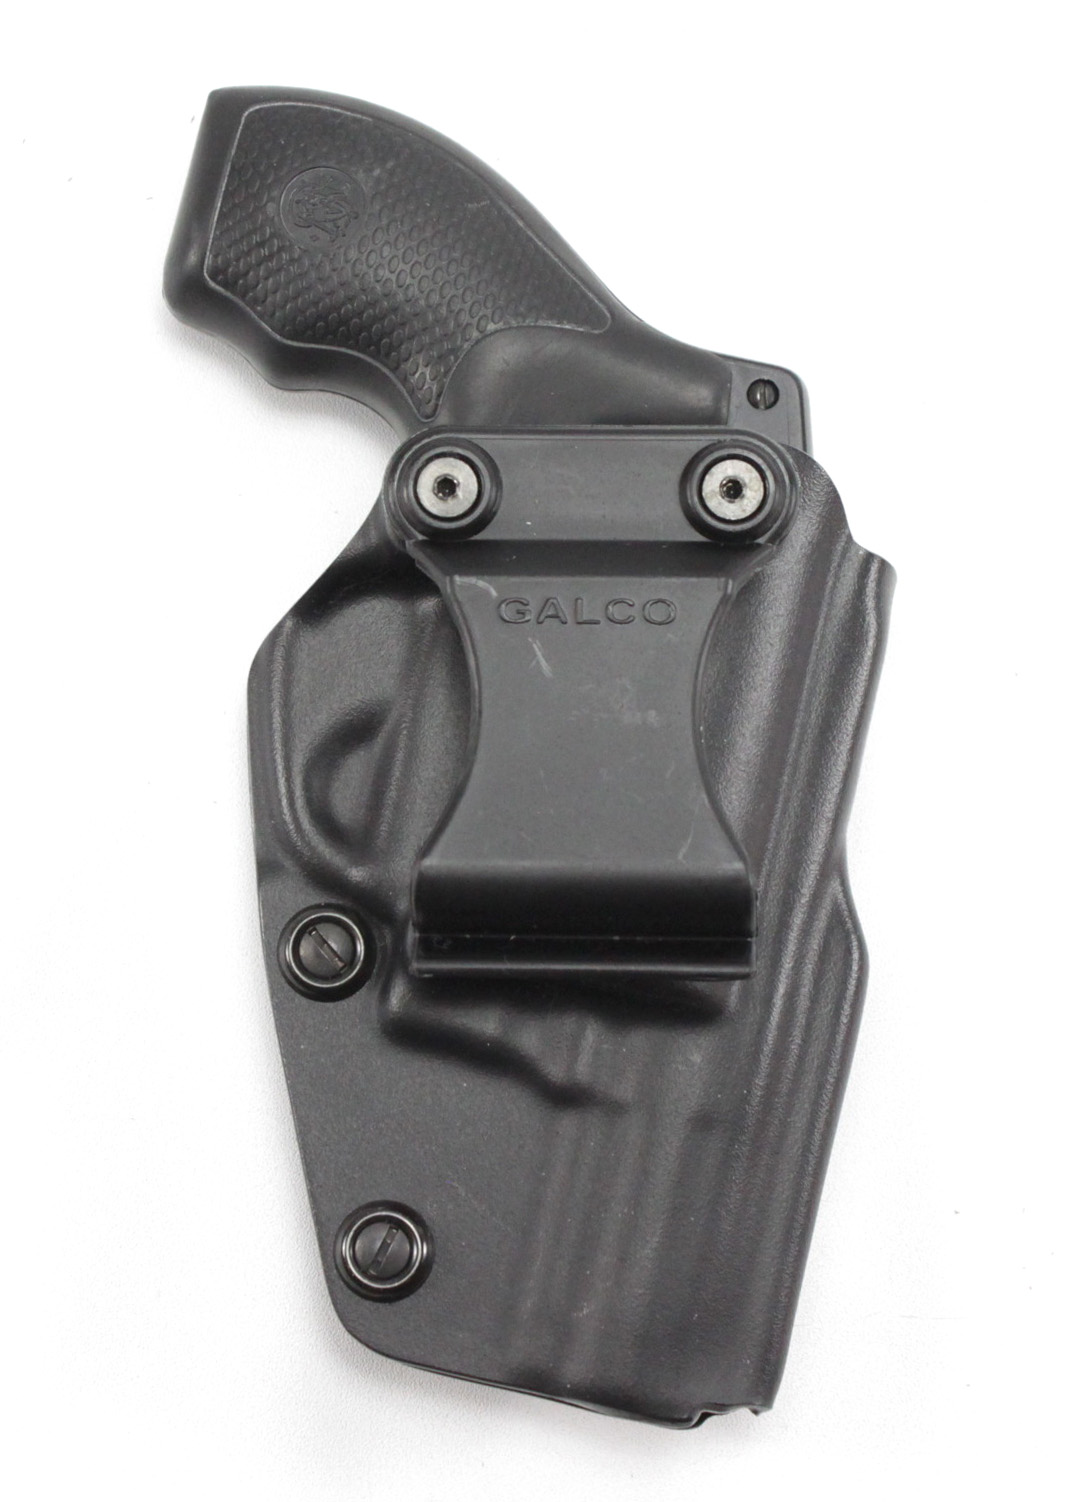 Galco TR158 Triton Kydex IWB Smith & Wesson J Frame Holster 2 Inch Models  (642, 442, 649, 340PD, 351PD, 317, 43C, 63, 36)